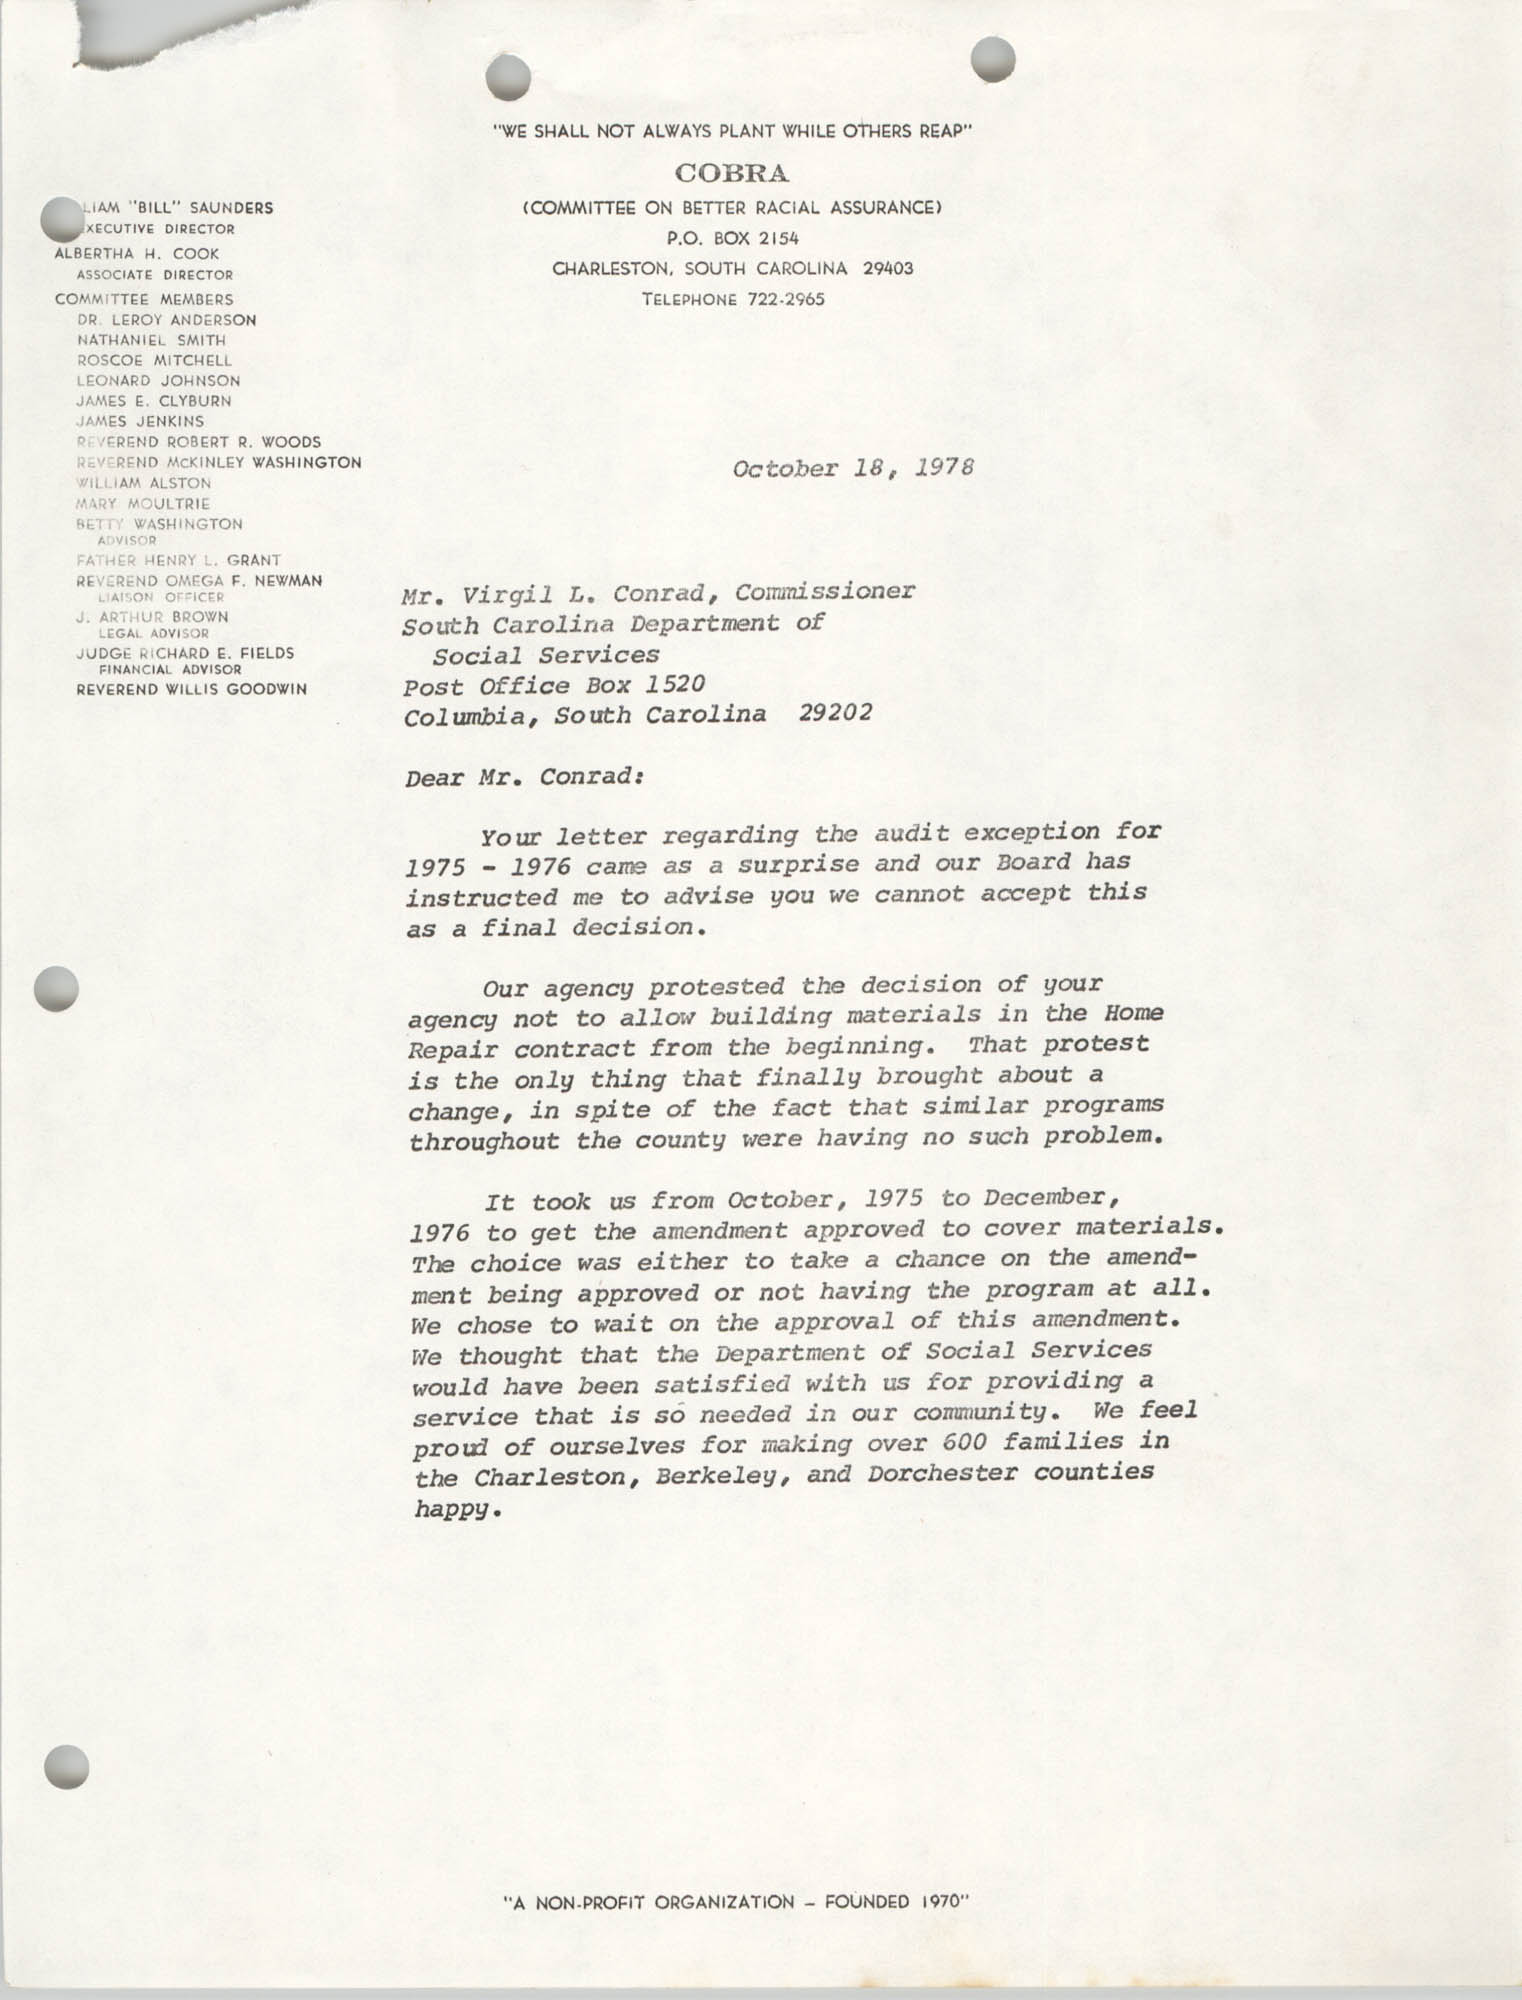 Letter from William Saunders to Virgil L. Conrad, October 18, 1978